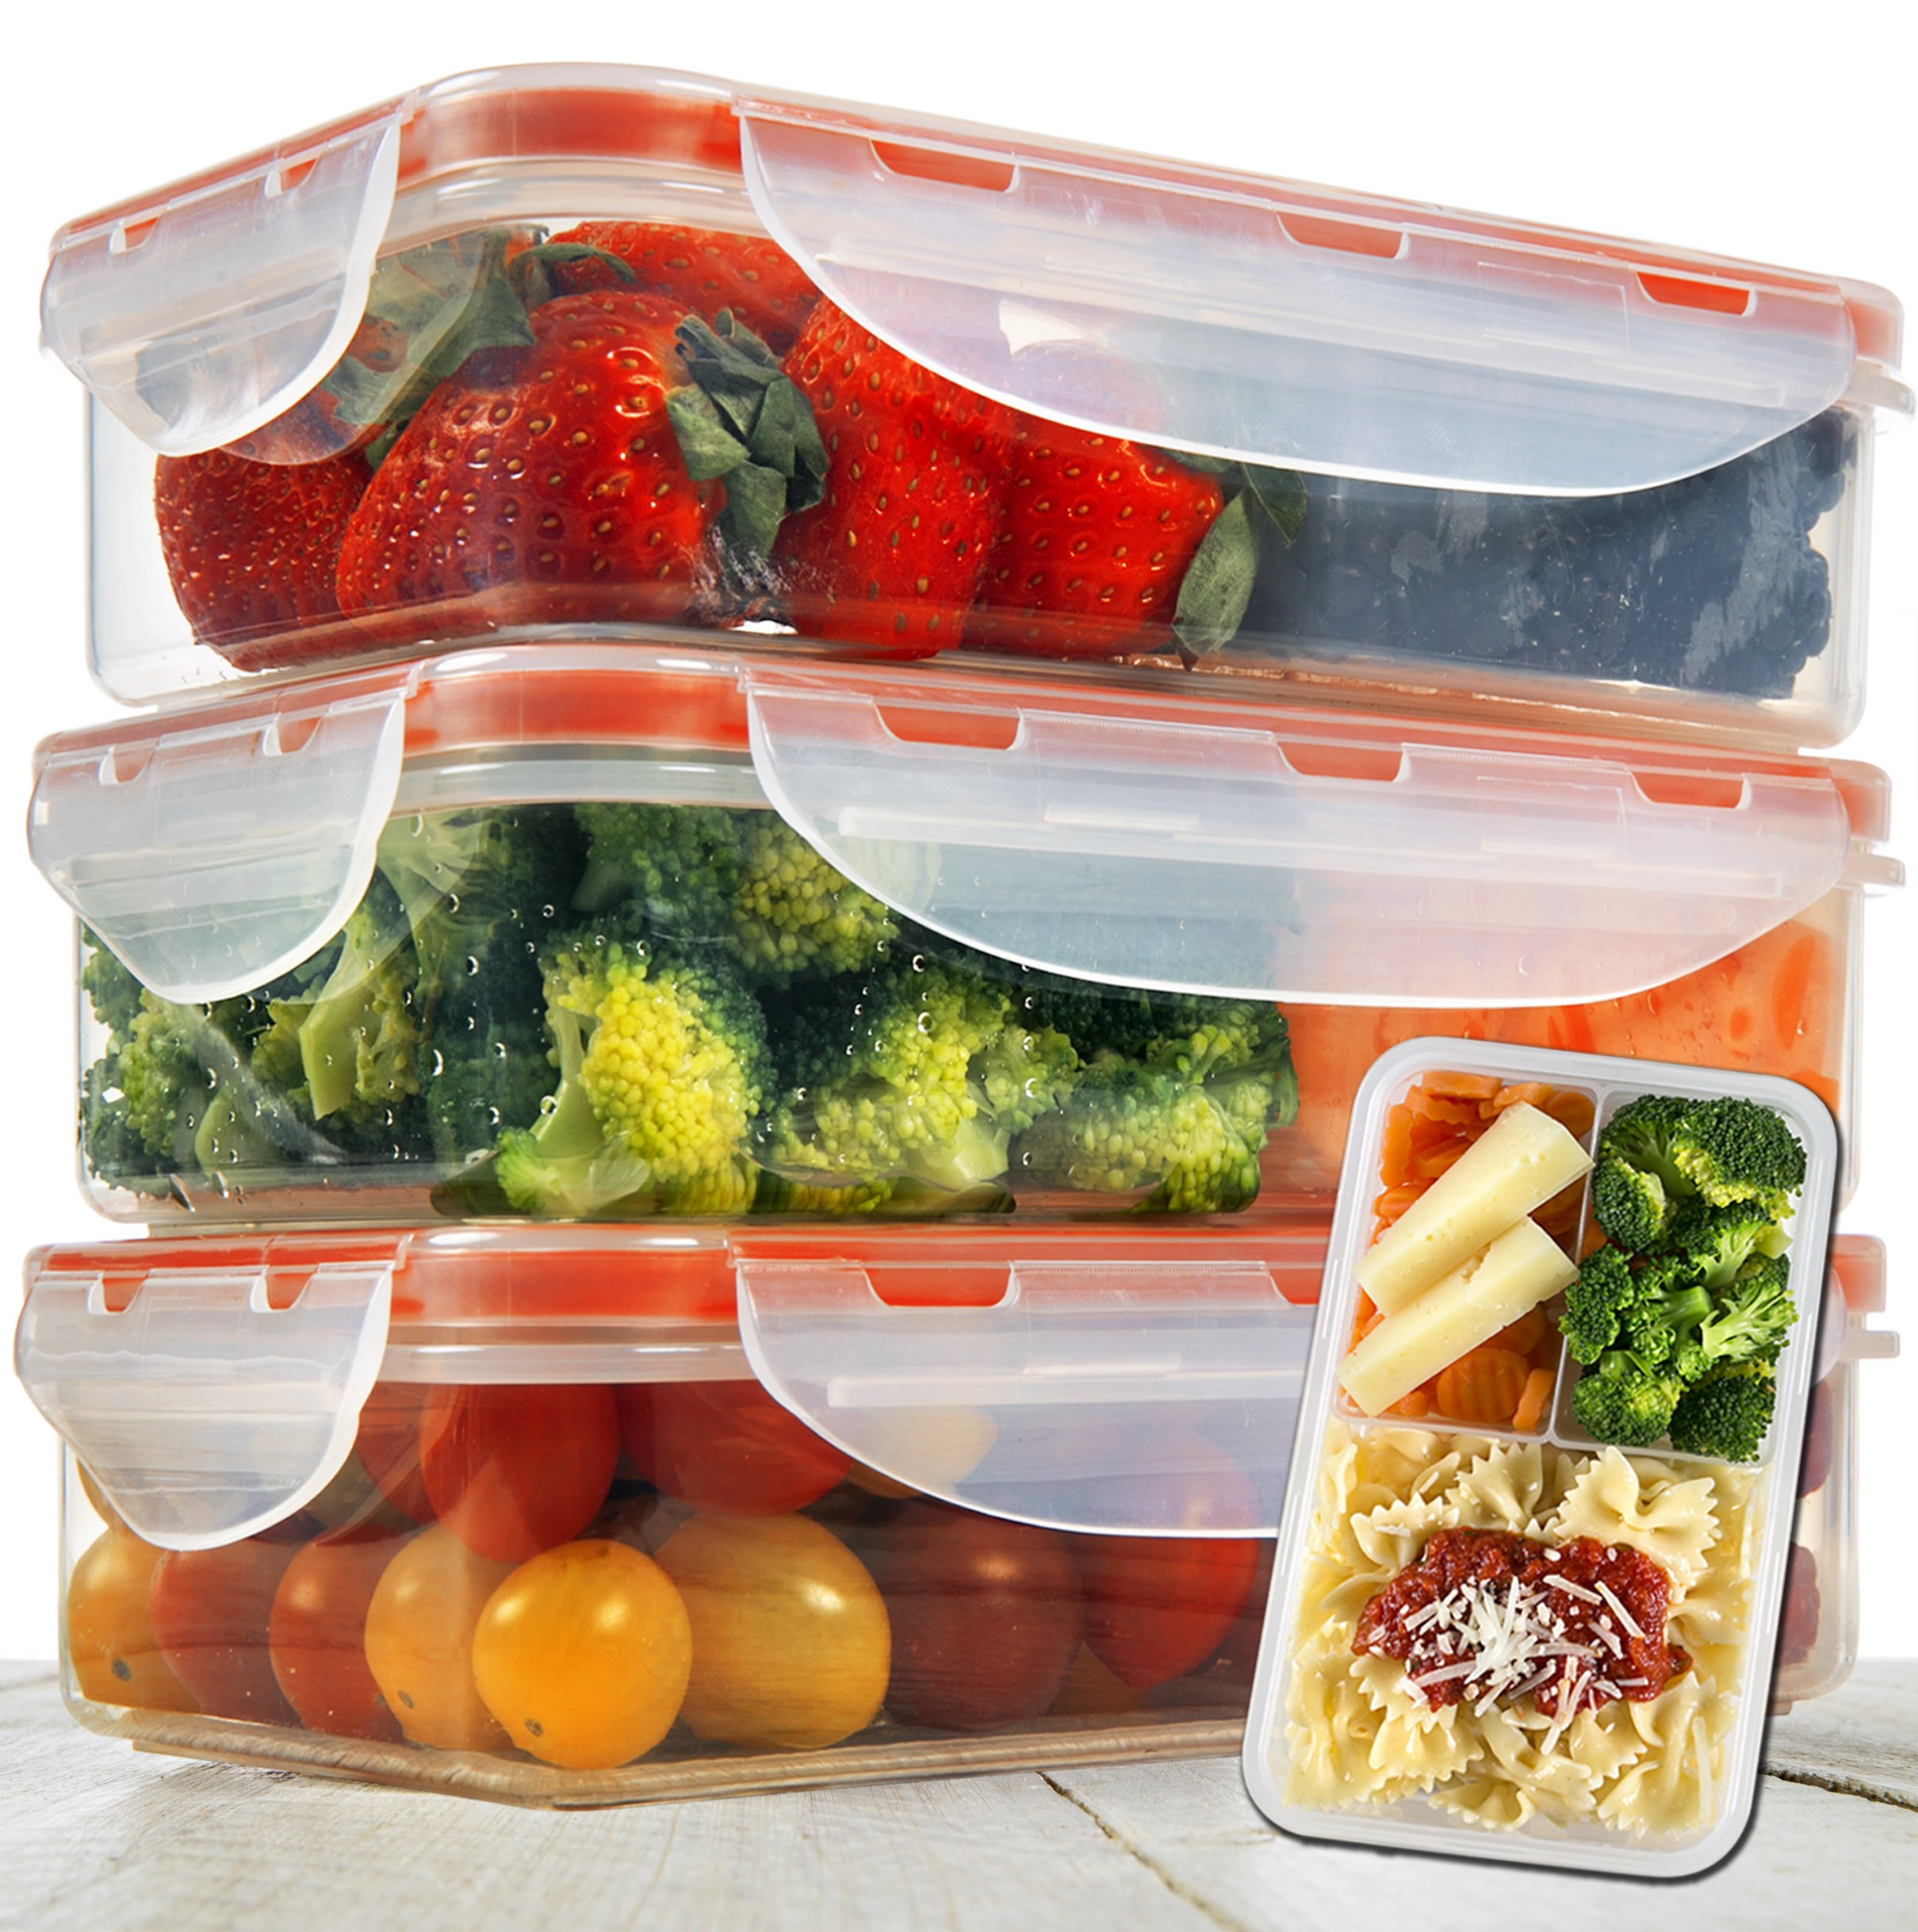 Bento Lunch Box 3pcs set 24oz - Meal Prep Containers Microwavable - BPA Free Leak Proof - Portion Control Containers - Food Containers Meal Prep 3 Compartments Dishwasher Friendly - Snap Locking Lid